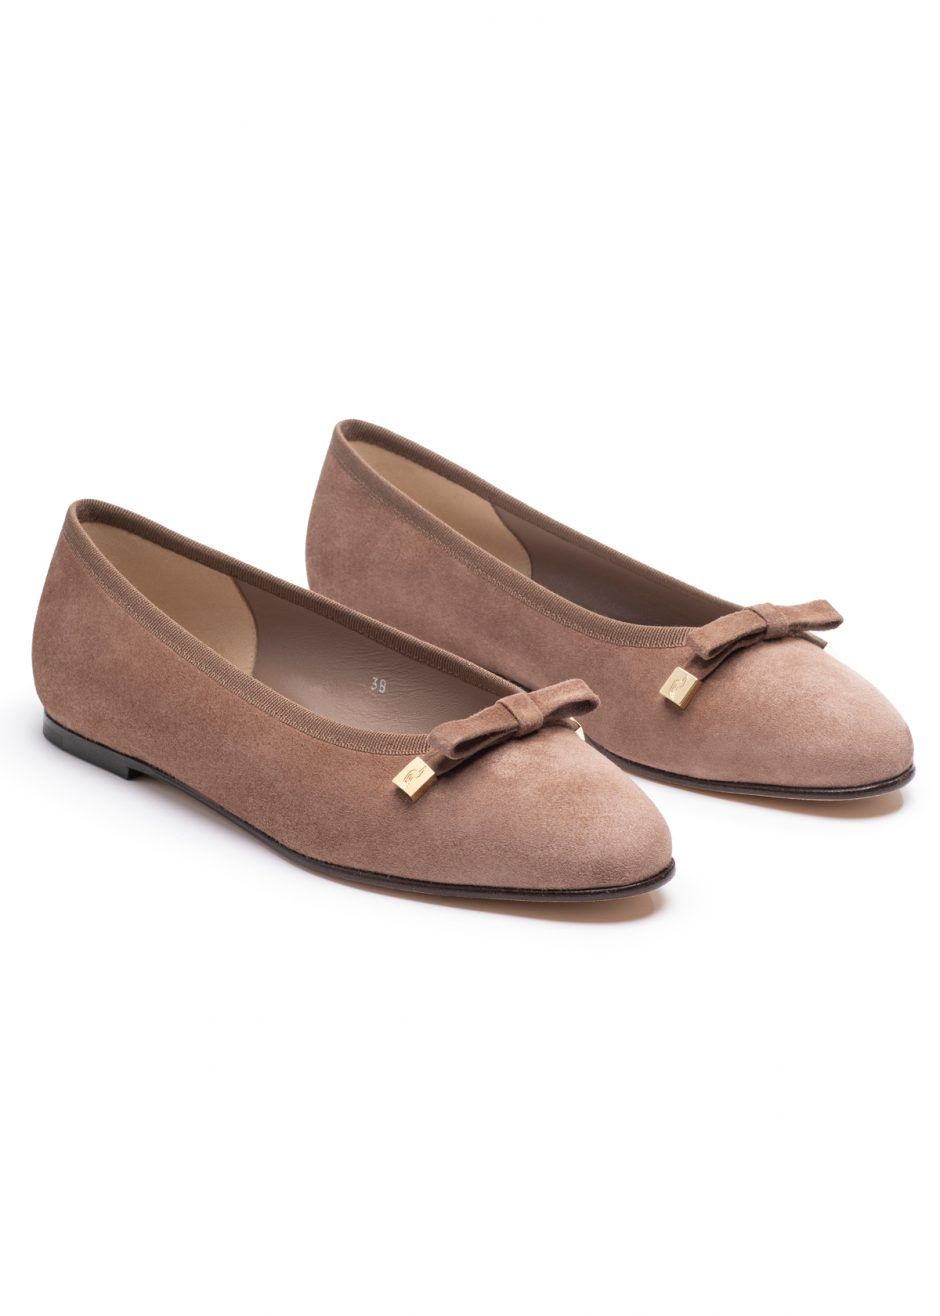 Audrey – Ballet flat taupe kidskin suede with suede bow